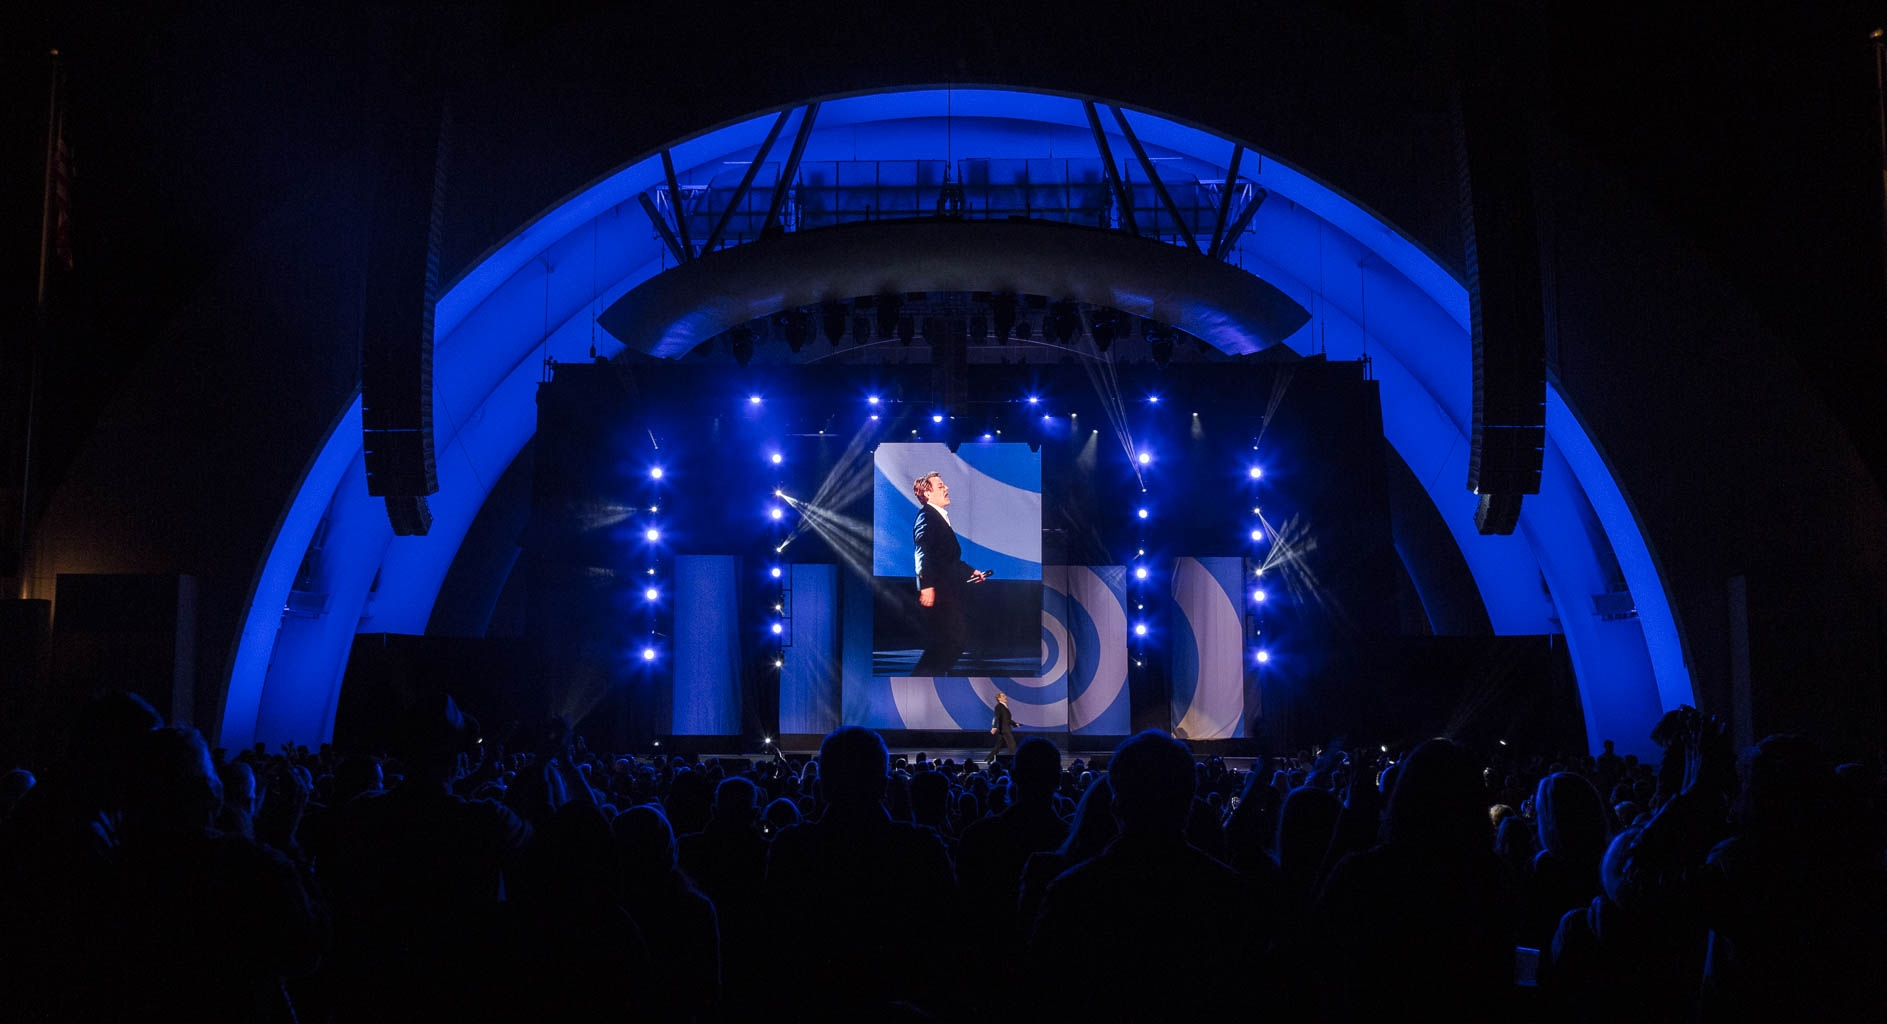 Eddie Izzard - Hollywood Bowl - Design by Orangelite